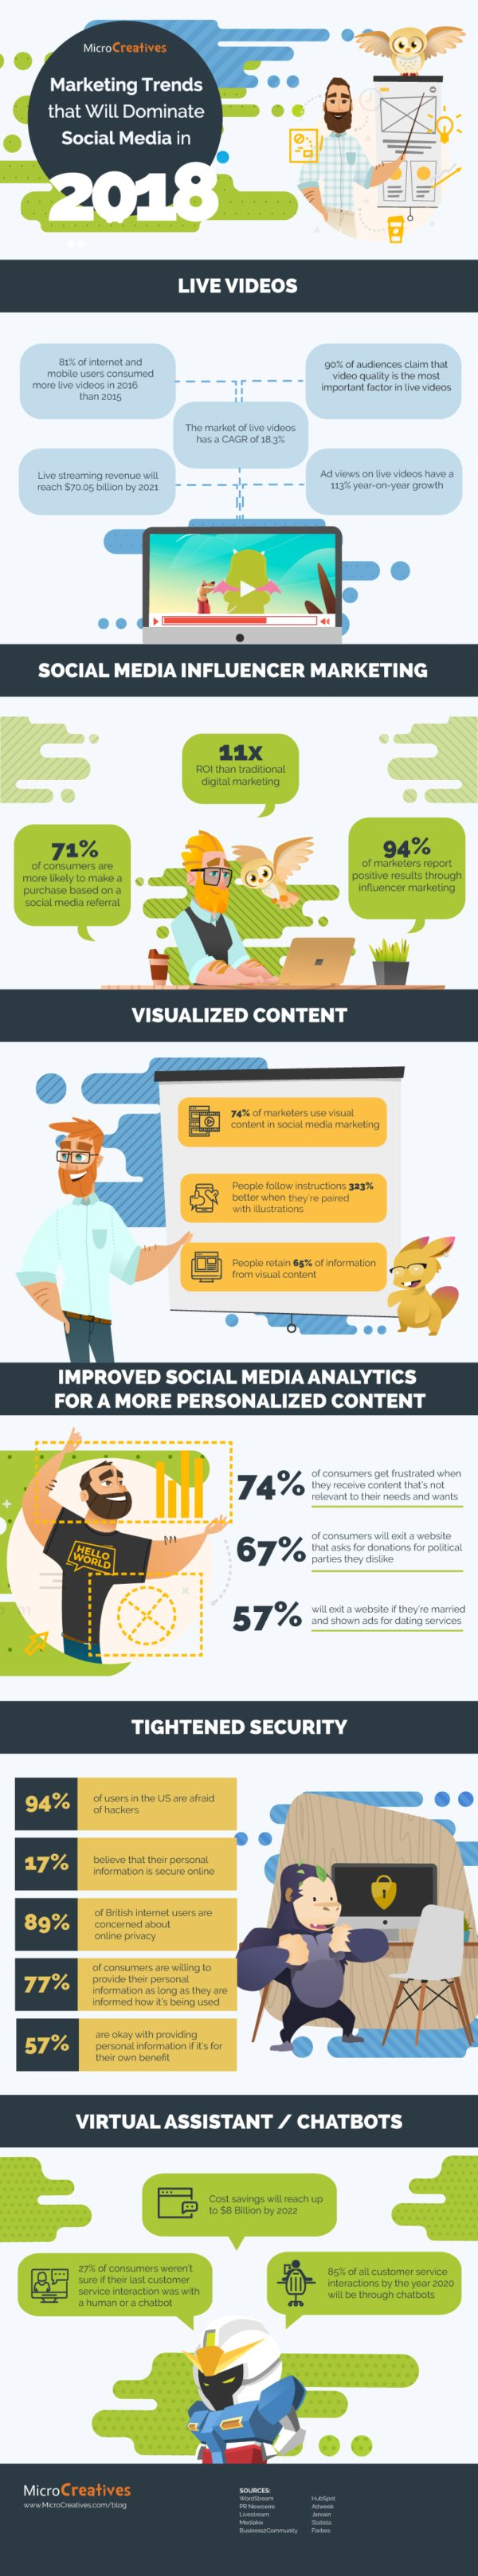 6-Marketing-Trends-That-Will-Dominate-Social-Media-in-2018-Infographic